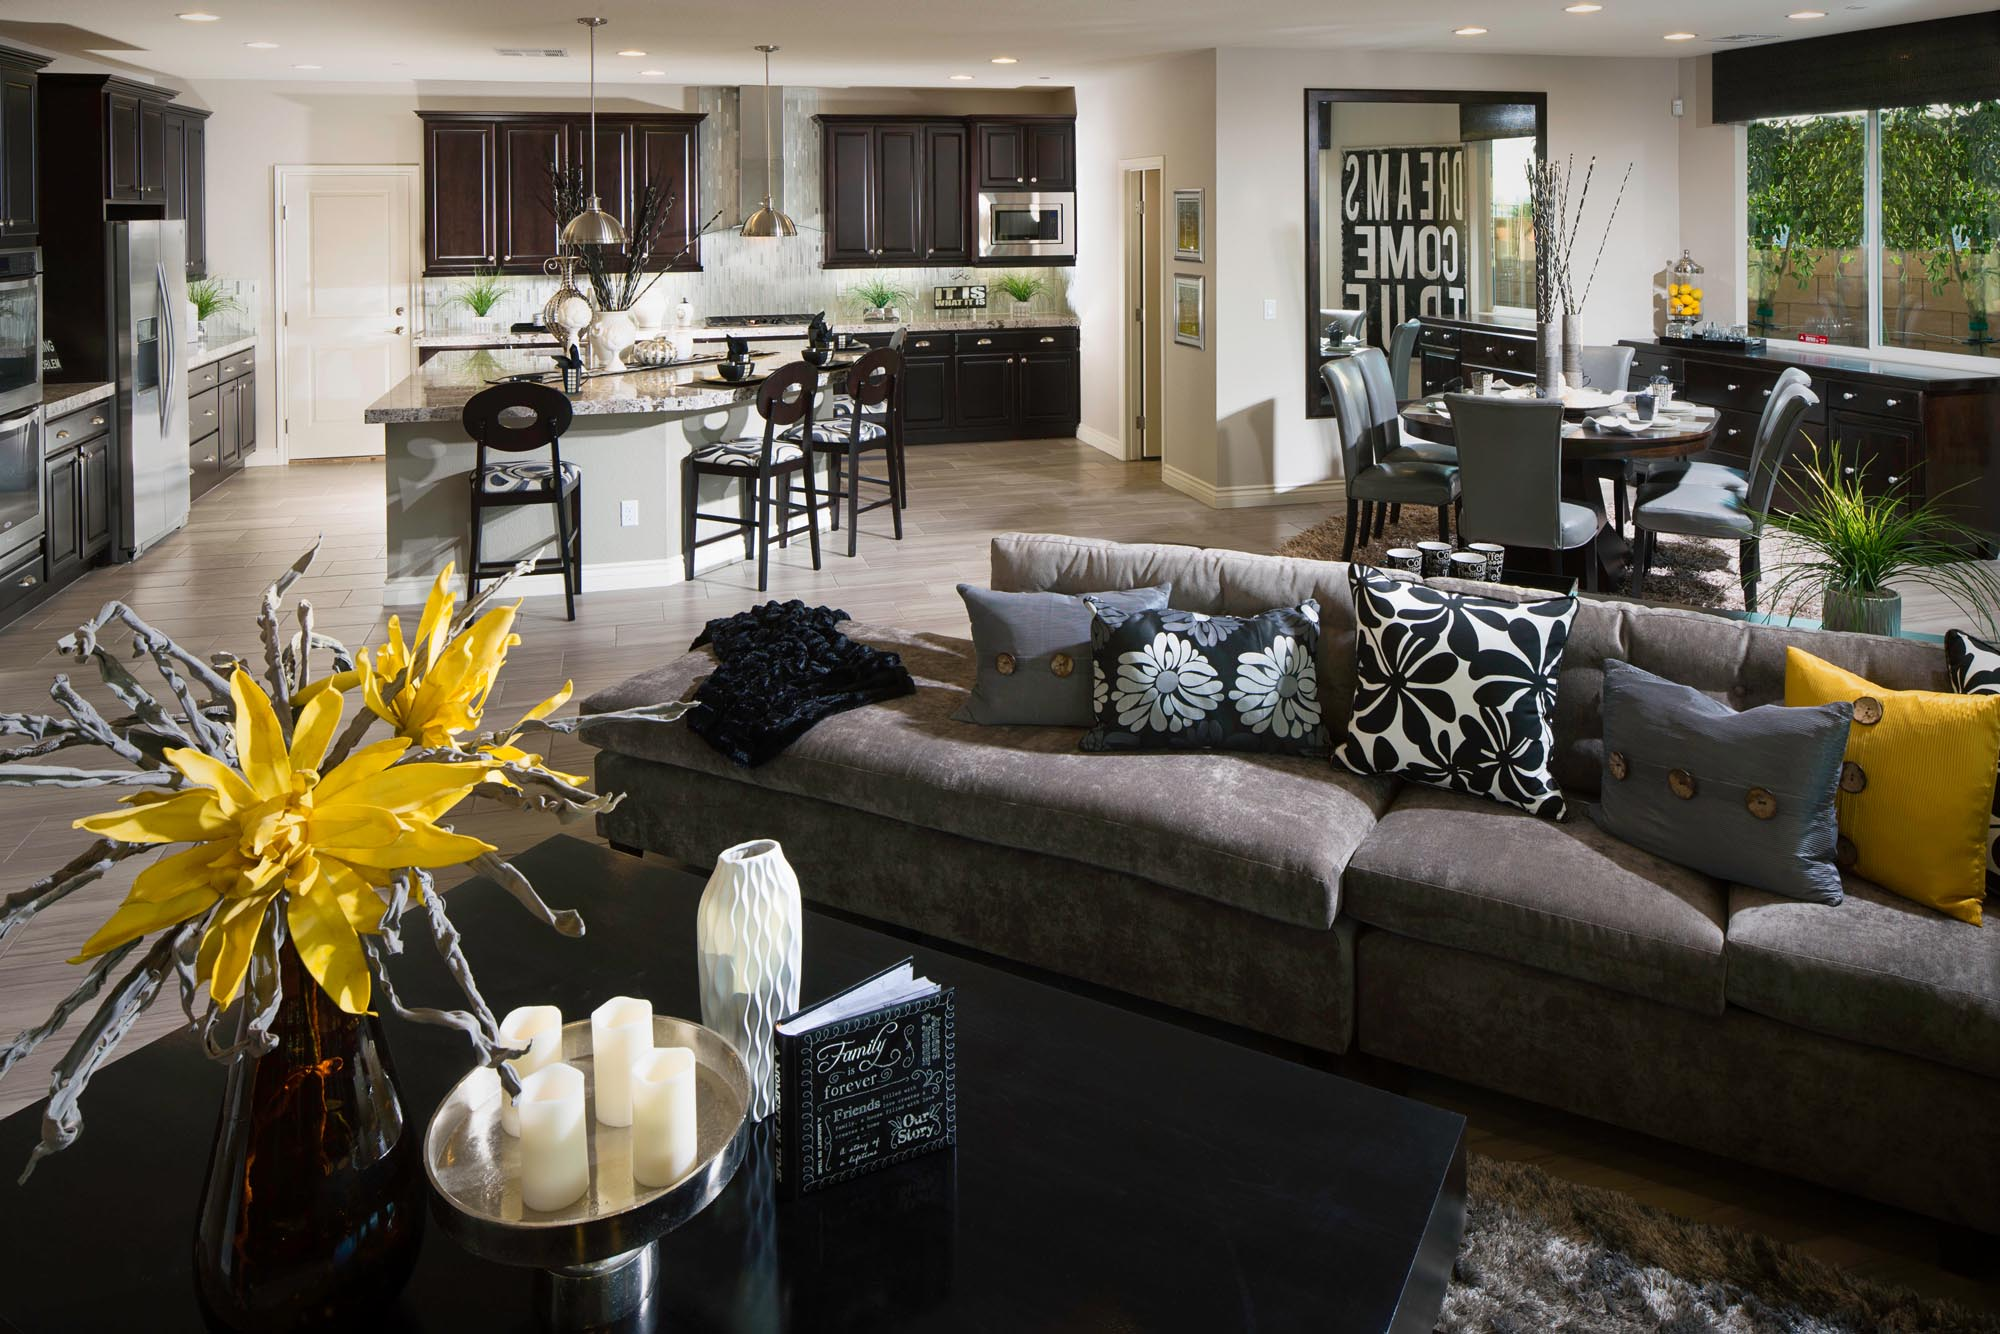 Pictures of model homes - Treviso By Kb Home Las Vegas